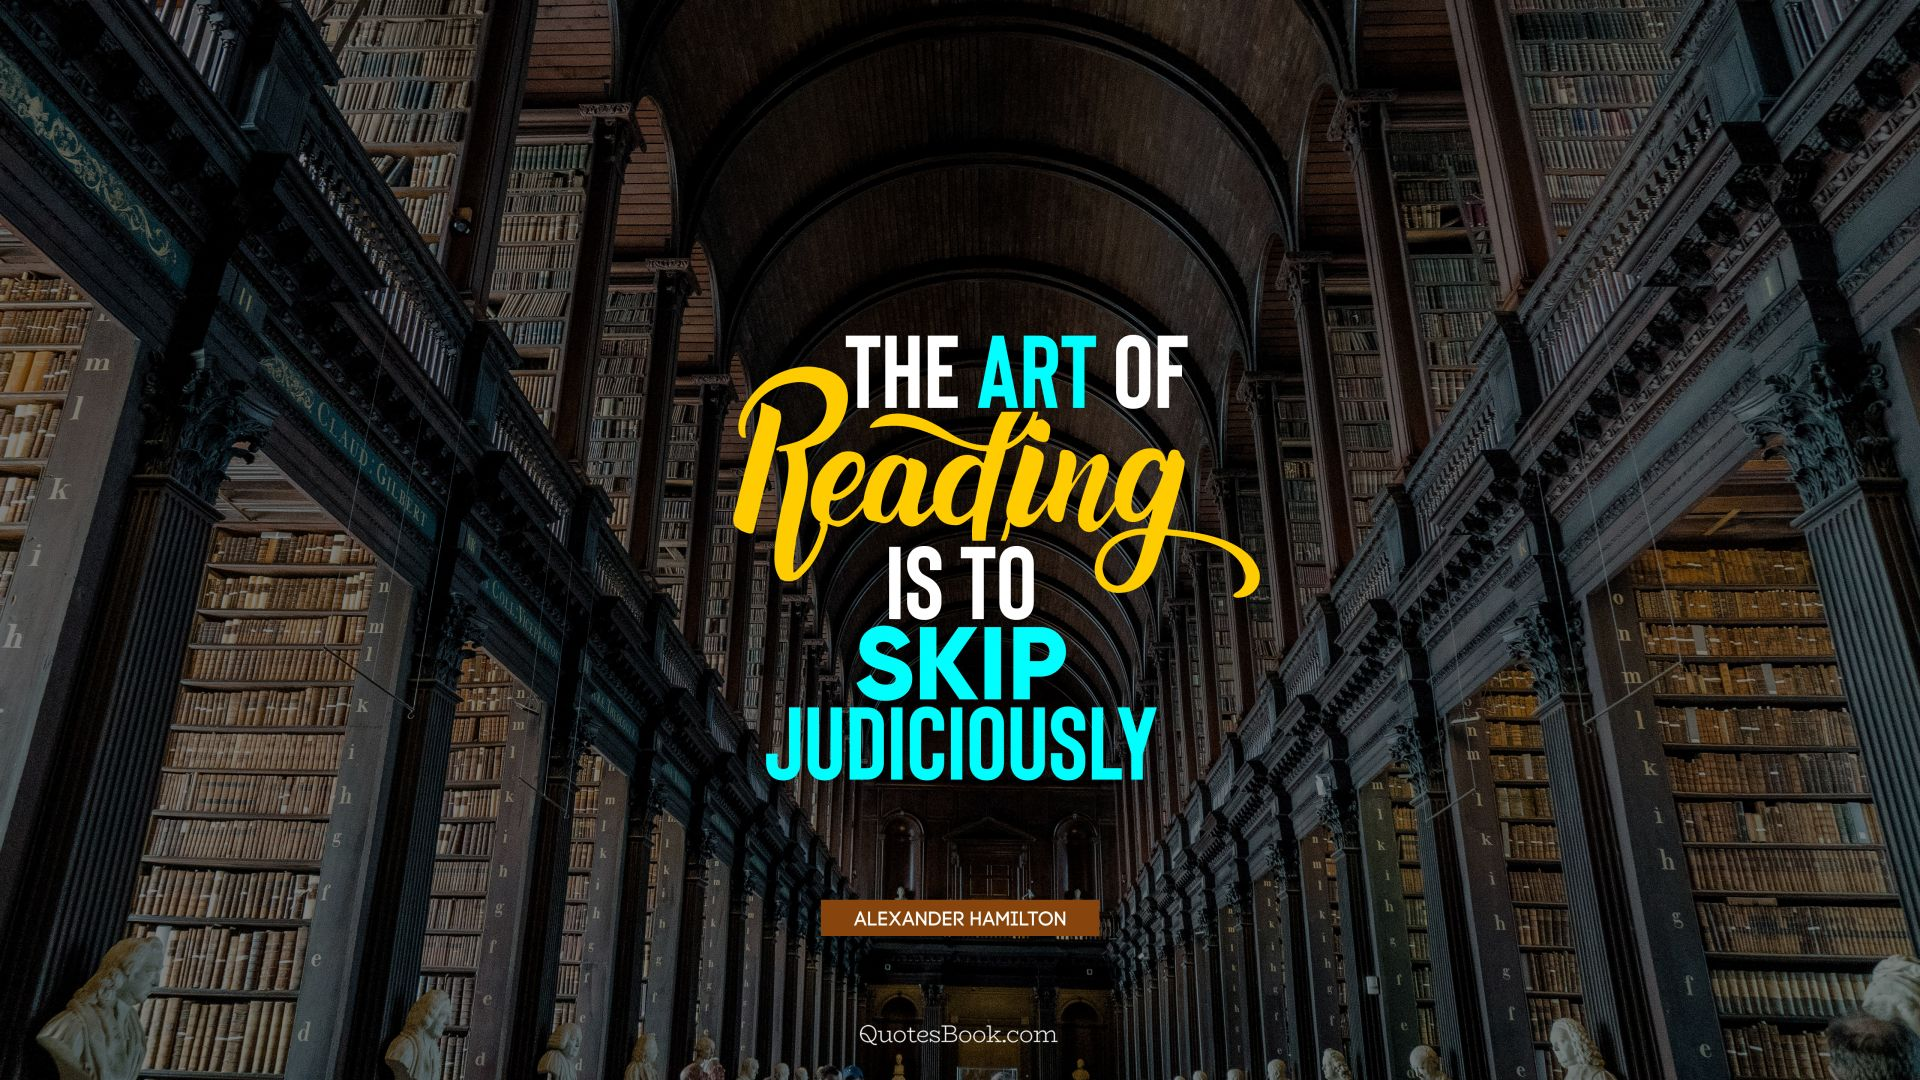 The art of reading is to skip judiciously. - Quote by Alexander Hamilton